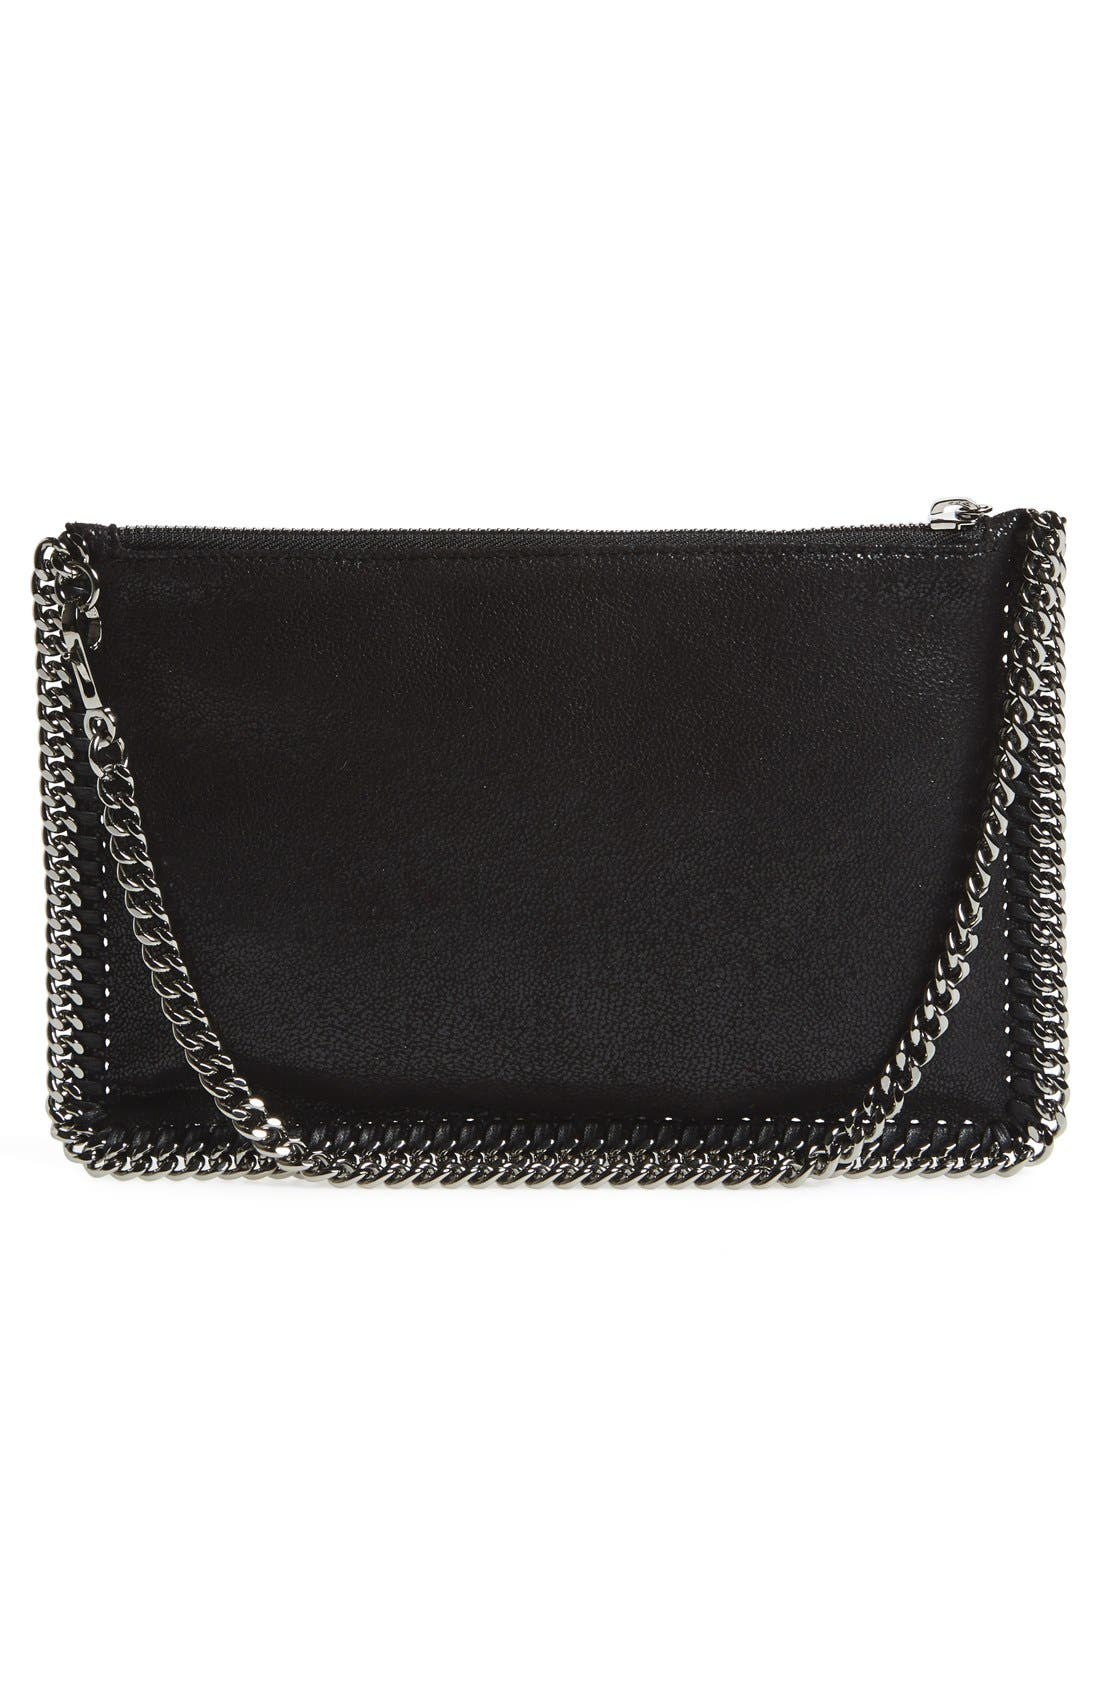 'Falabella' Faux Leather Pouch with Convertible Strap,                             Alternate thumbnail 3, color,                             002